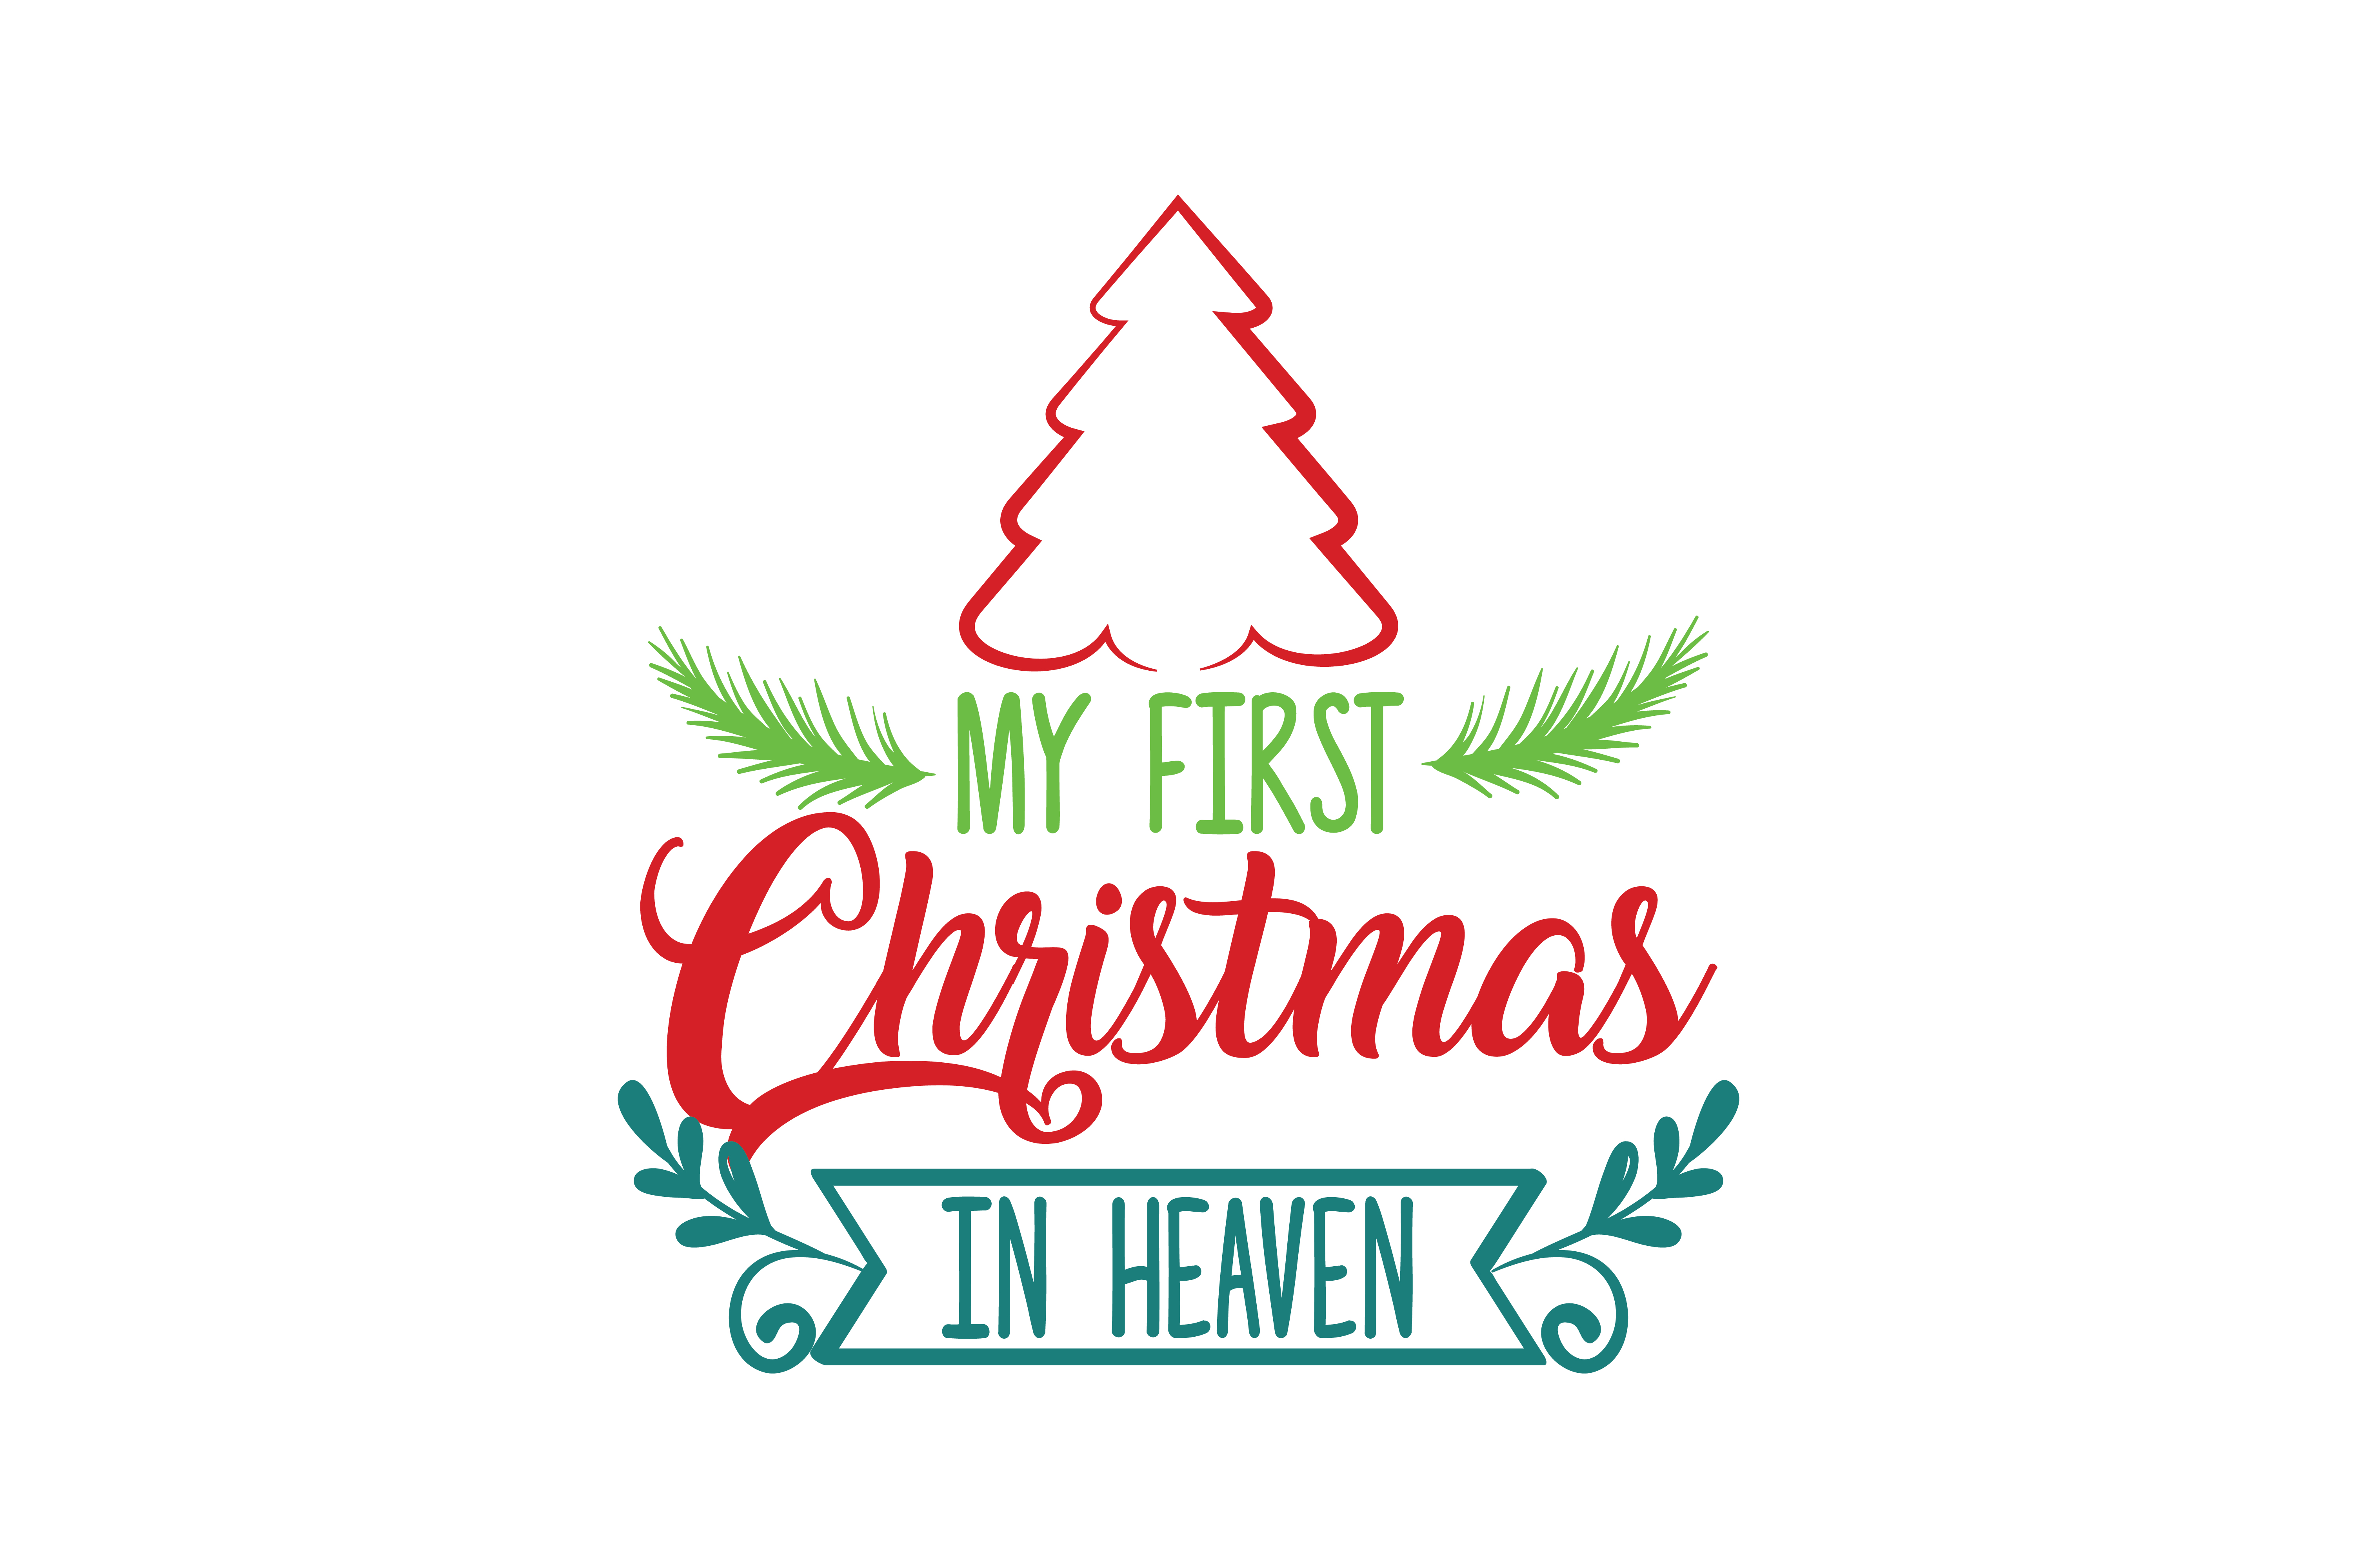 Christmas In Heaven Svg.My First Christmas In Heaven Svg Cut